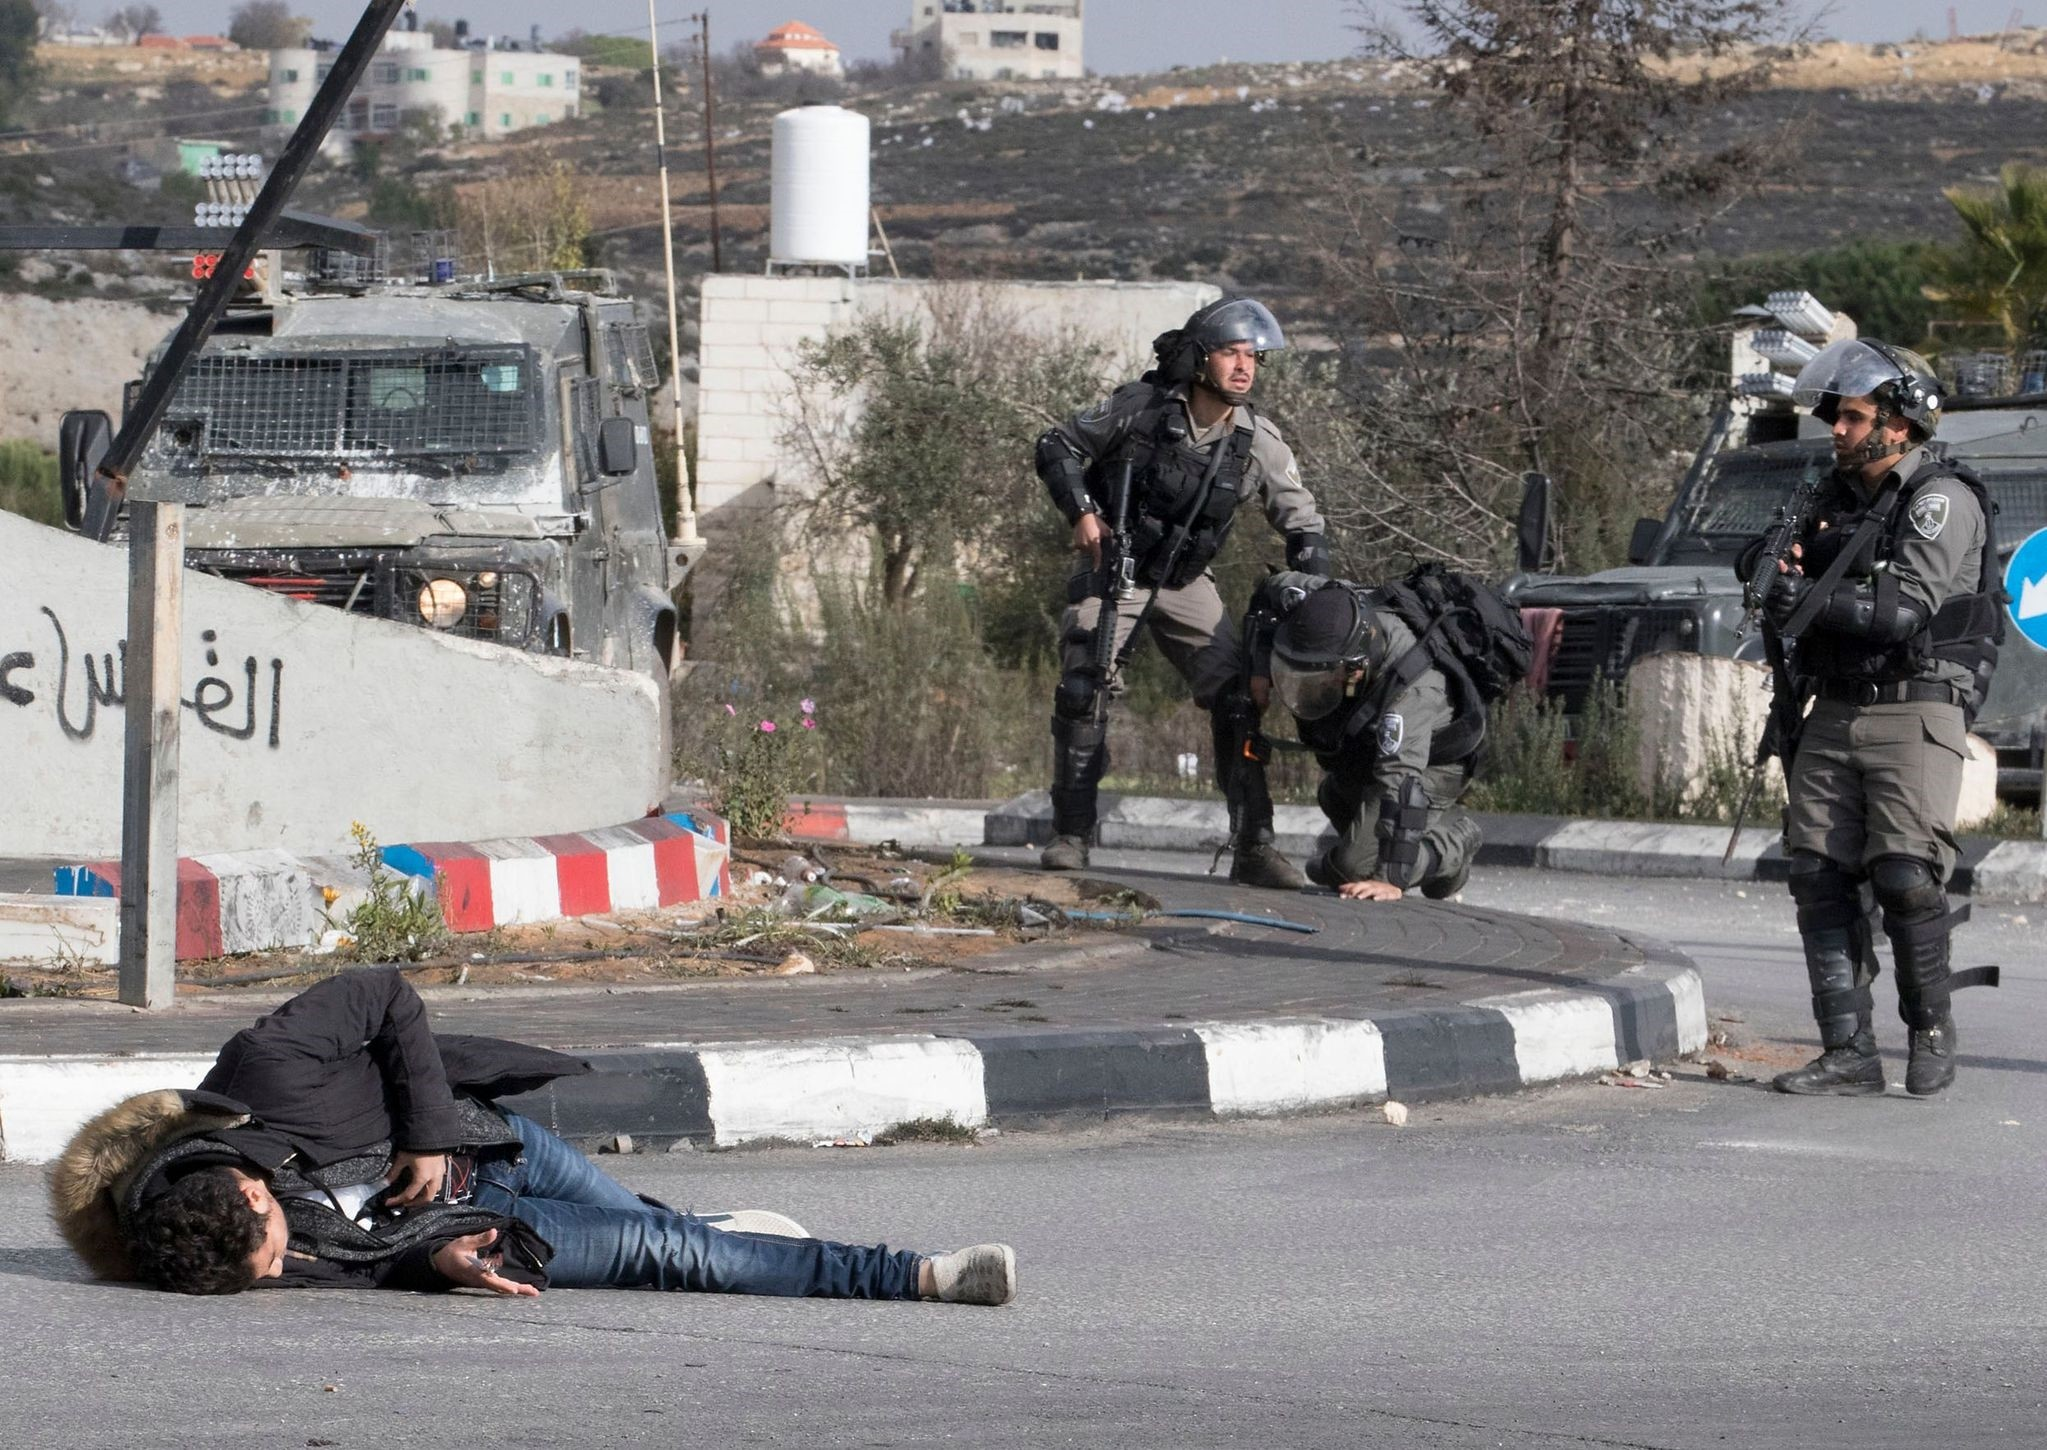 A Palestinian man clutches his stomach after he was shot by Israeli soldiers, in reaction to his stabbing attack on a soldier, in the Israeli occupied West Bank town of al-Bireh on December 15, 2017. (AFP Photo)